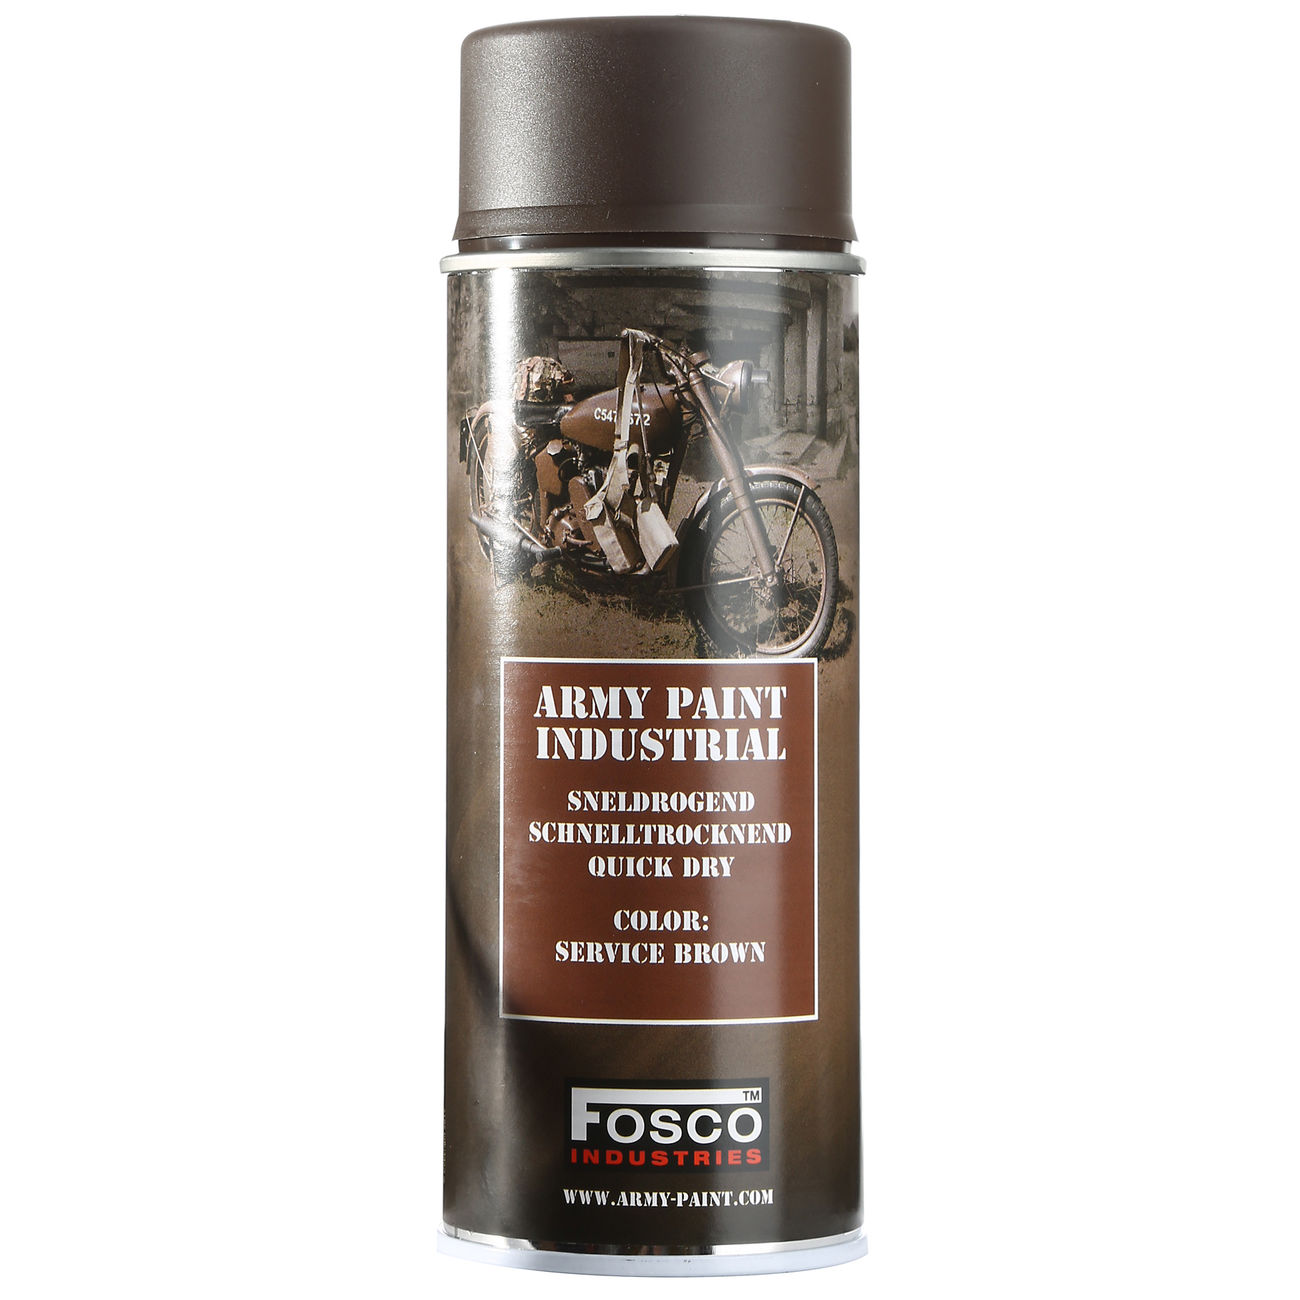 Army Paint Sprühfarbe, service brown 0